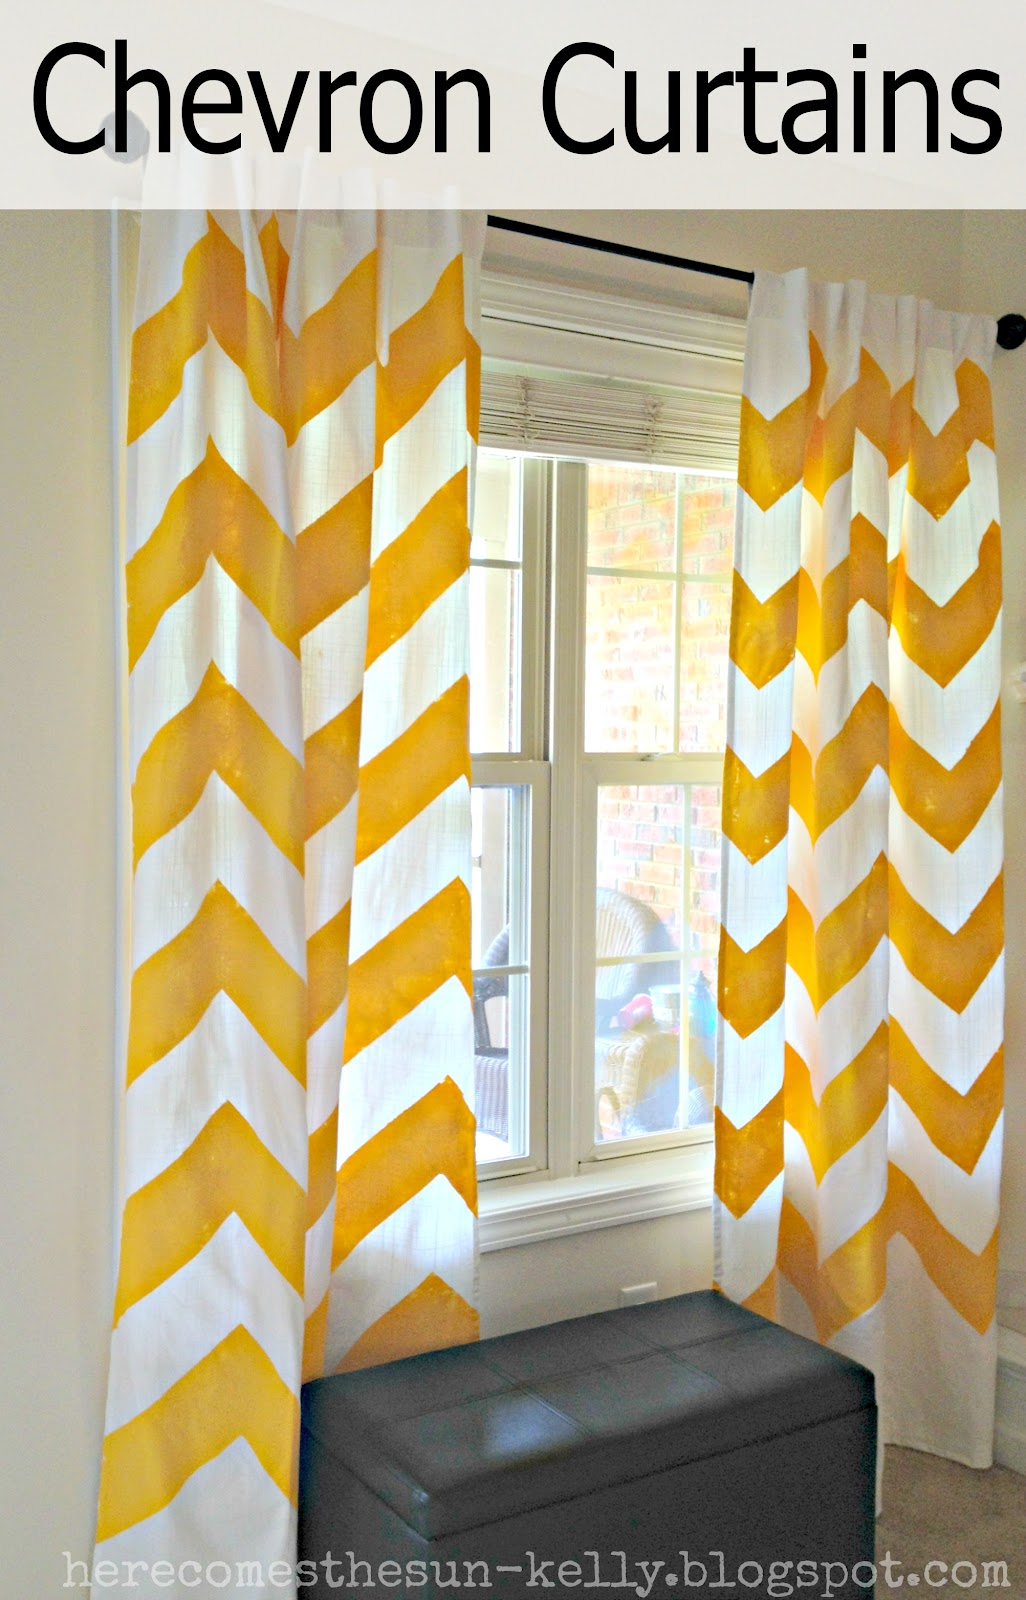 Wall Decor: Awesome Chevron Curtains In Grey And Orange Matced ...